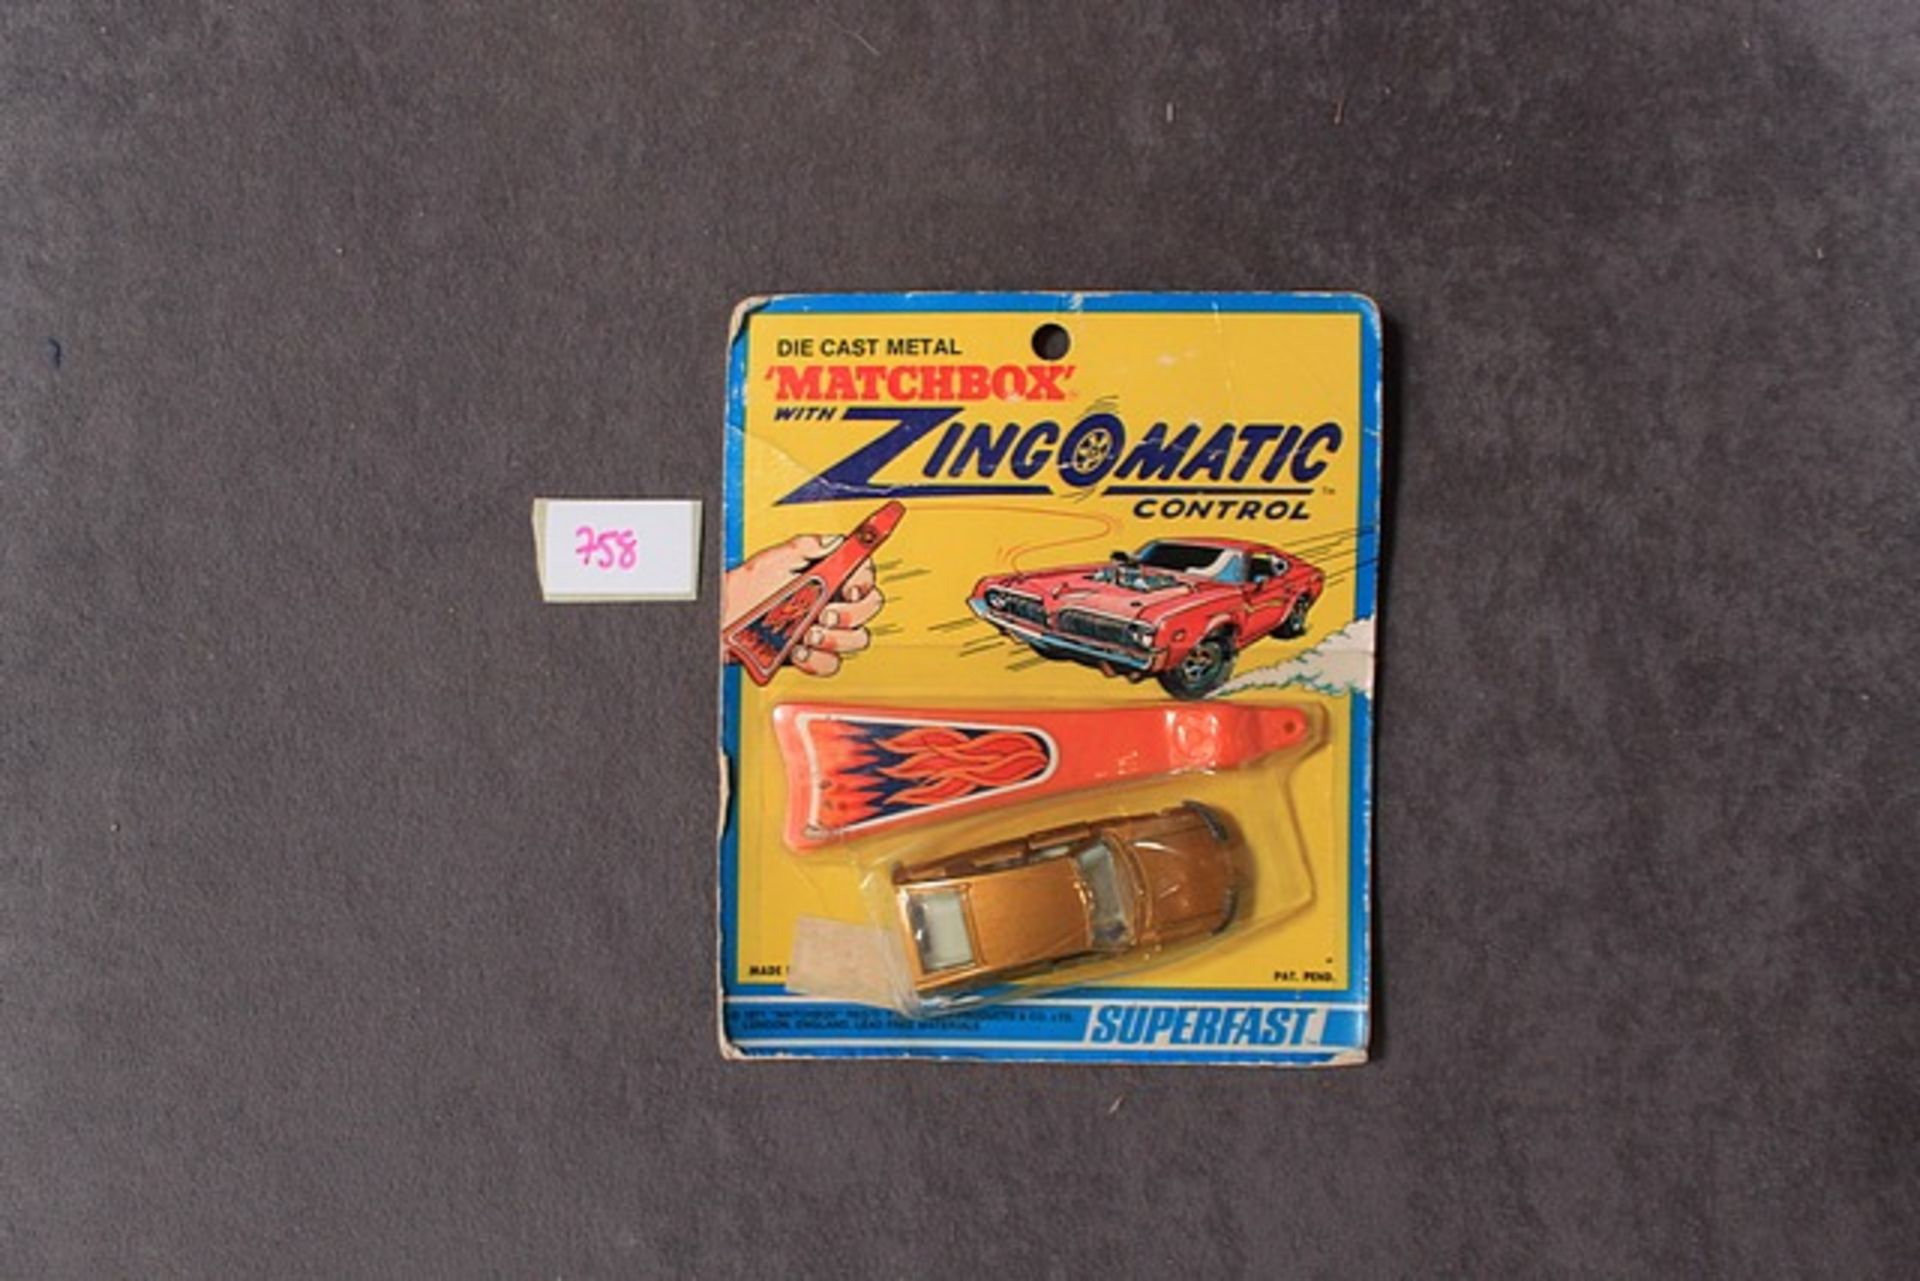 Lot 758 - Match Box Die Cast With Zingomatic Control On Unopened Card